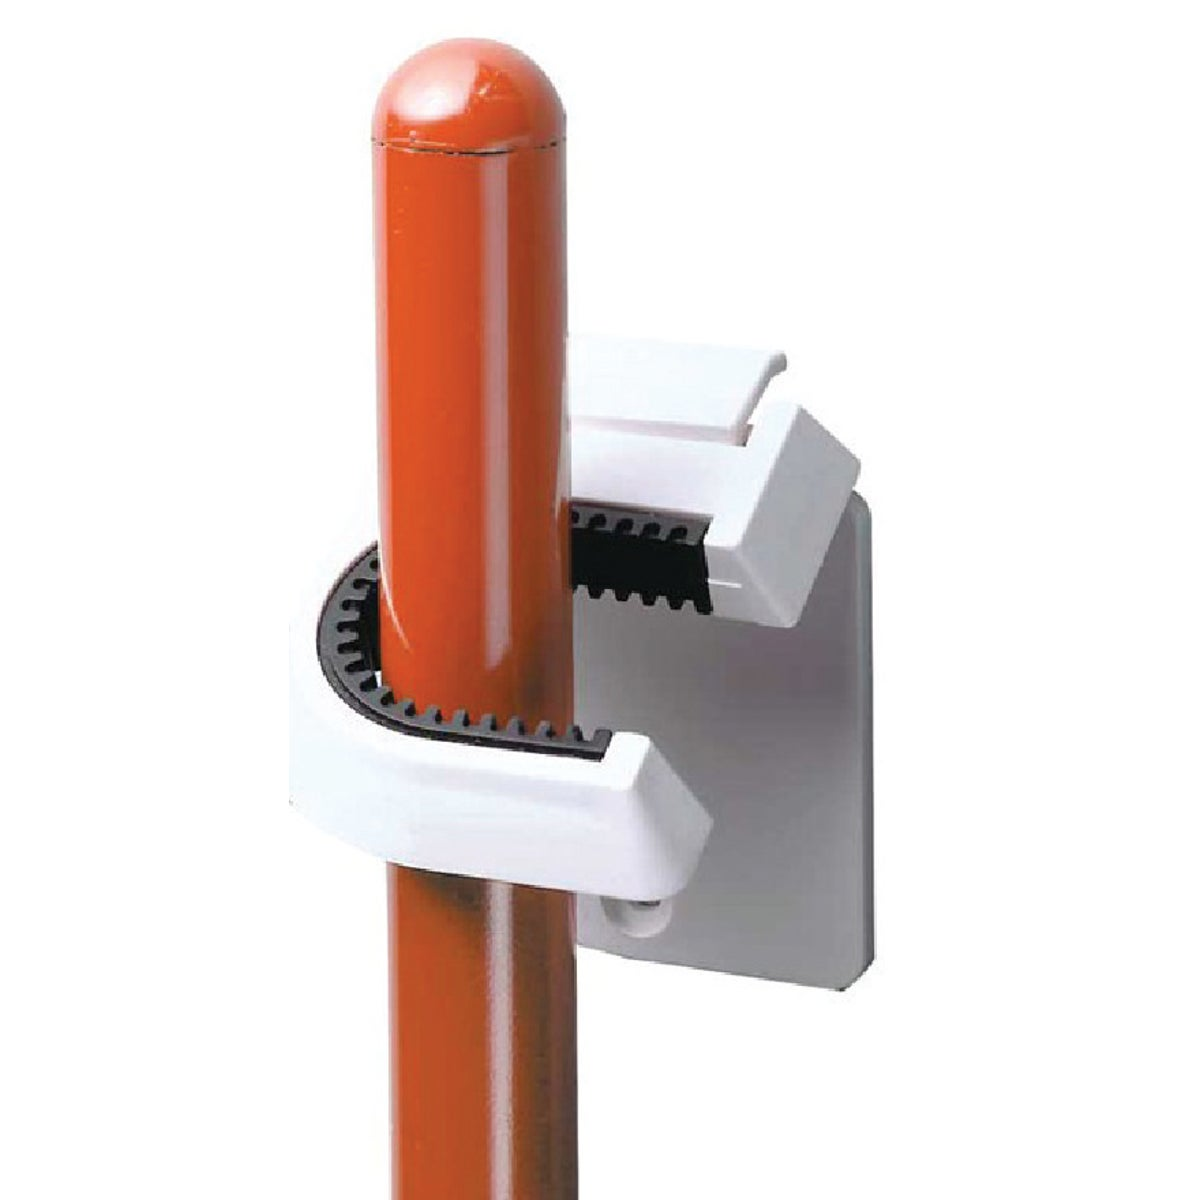 BROOM/MOP HOLDER - 11801 by Interdesign Inc